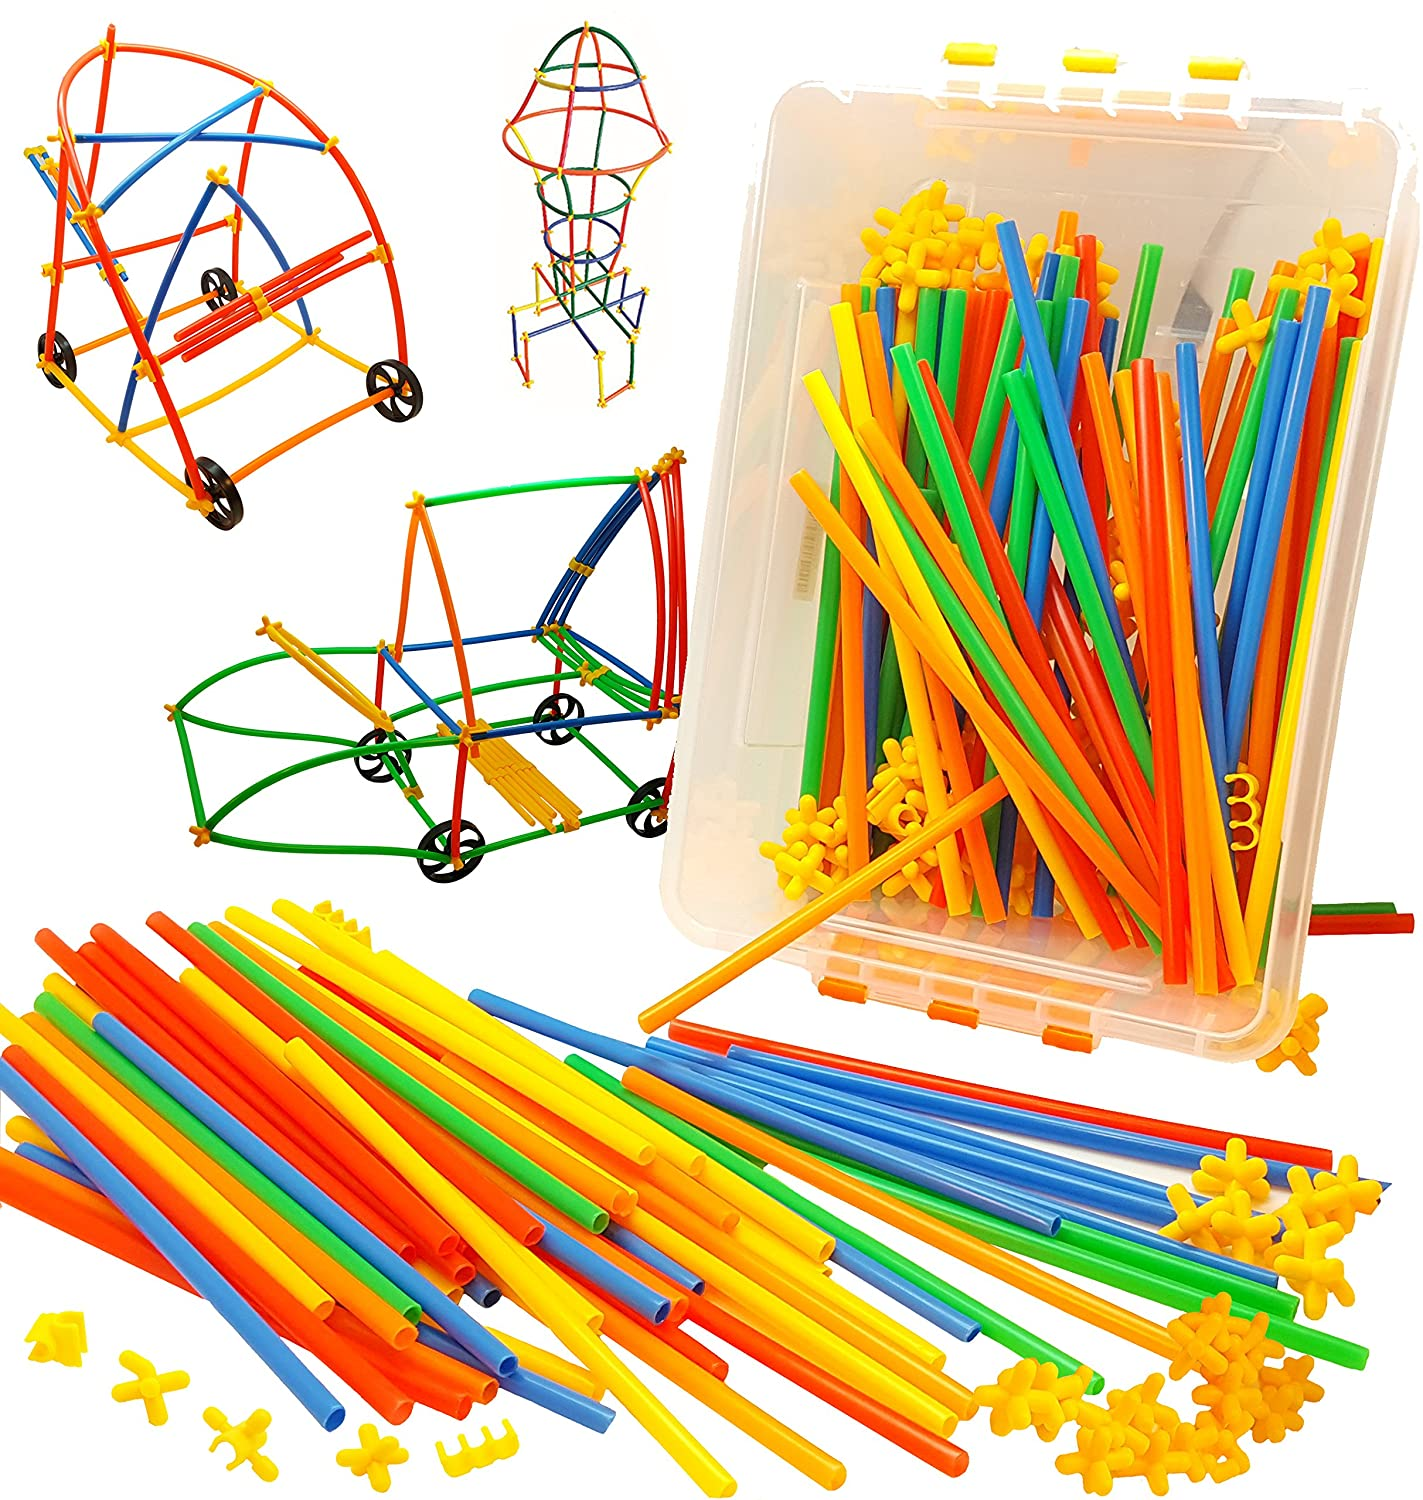 Wheels, Straws and Connectors Stem Toys - Skoolzy Kids Educational Toys for 3, 4, 5, 6 Year Olds - 400pc Fine Motor Skills Engineering Toys For Girls, Boys Building Kits Tinker Design Activities Set Review